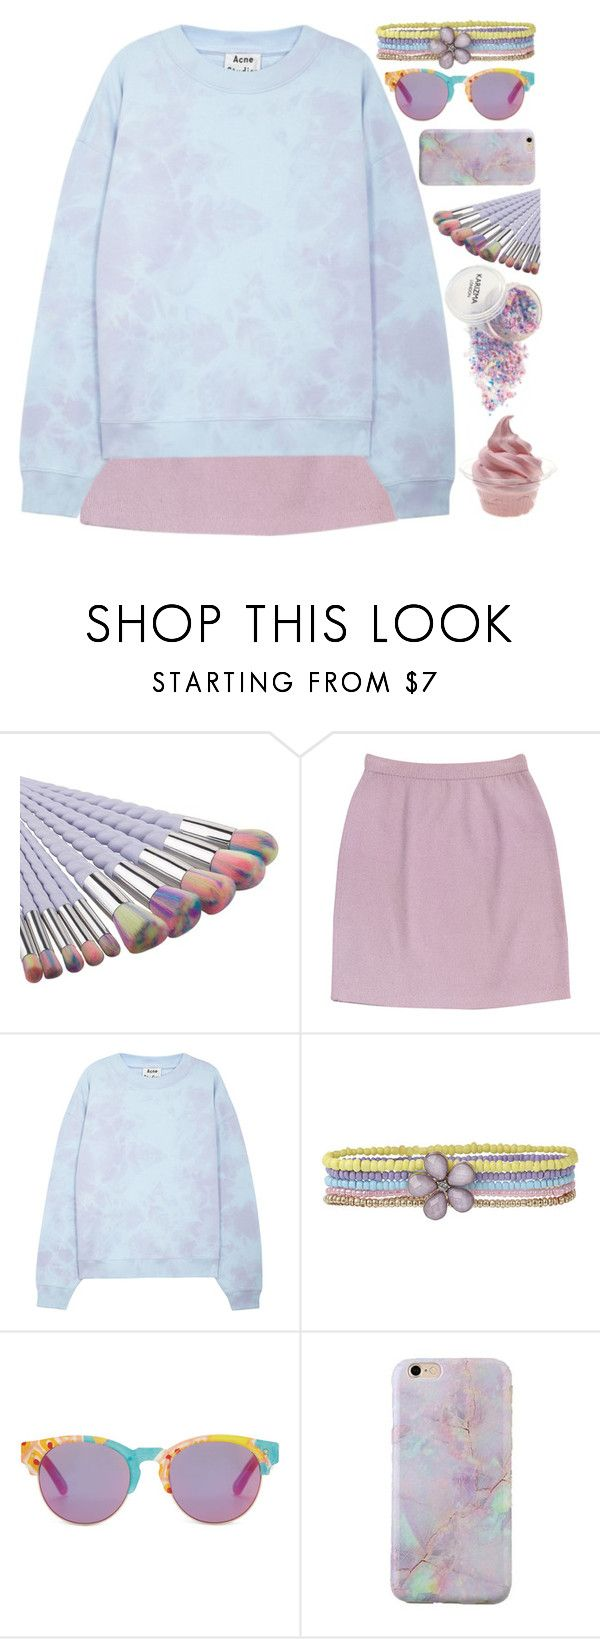 """""""marble"""" by katykitty5397 ❤ liked on Polyvore featuring St. John, Acne Studios, Disney, Monsoon, TOMS, simple and marble"""